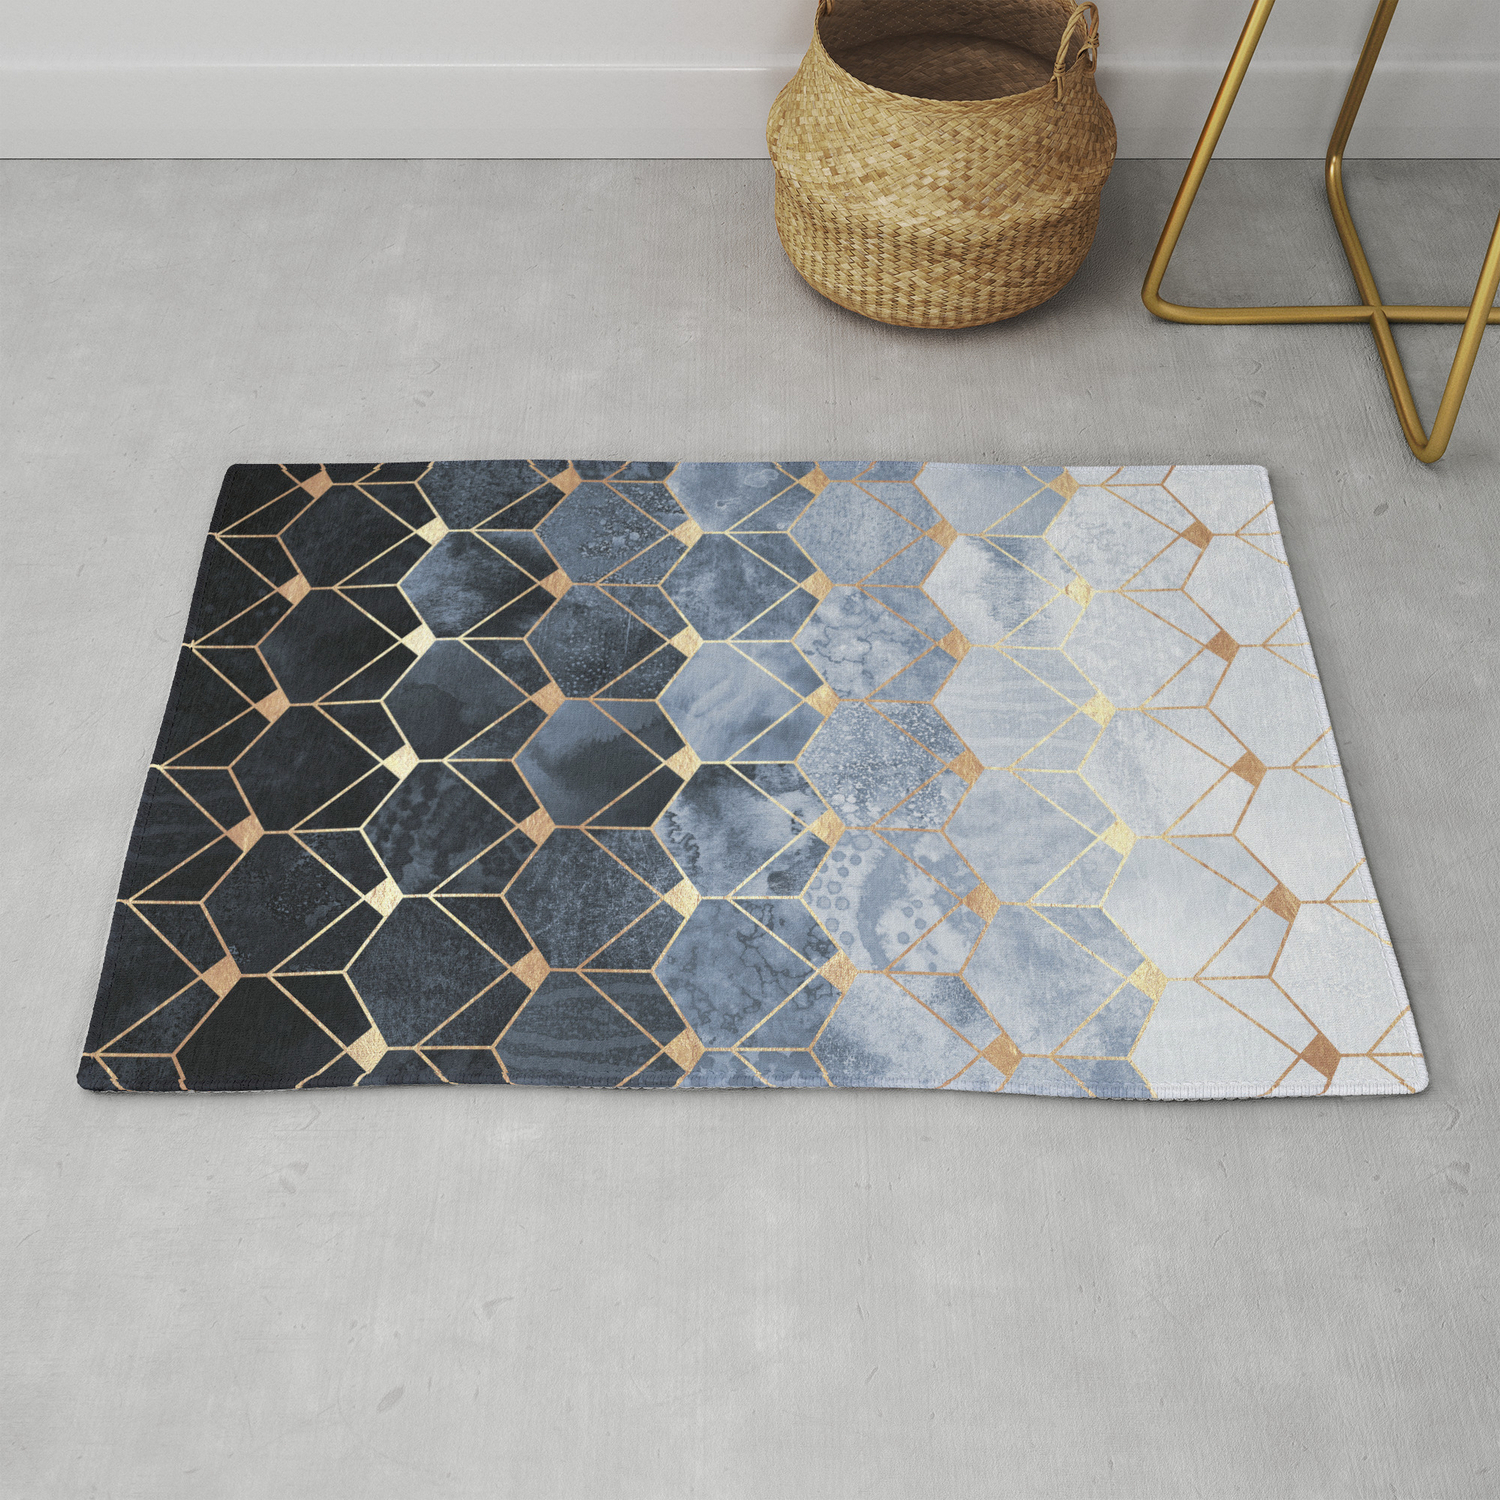 Blue Hexagons And Diamonds Rugelisabethfredriksson With Regard To Blue Hexagons And Diamonds Credenzas (View 6 of 20)